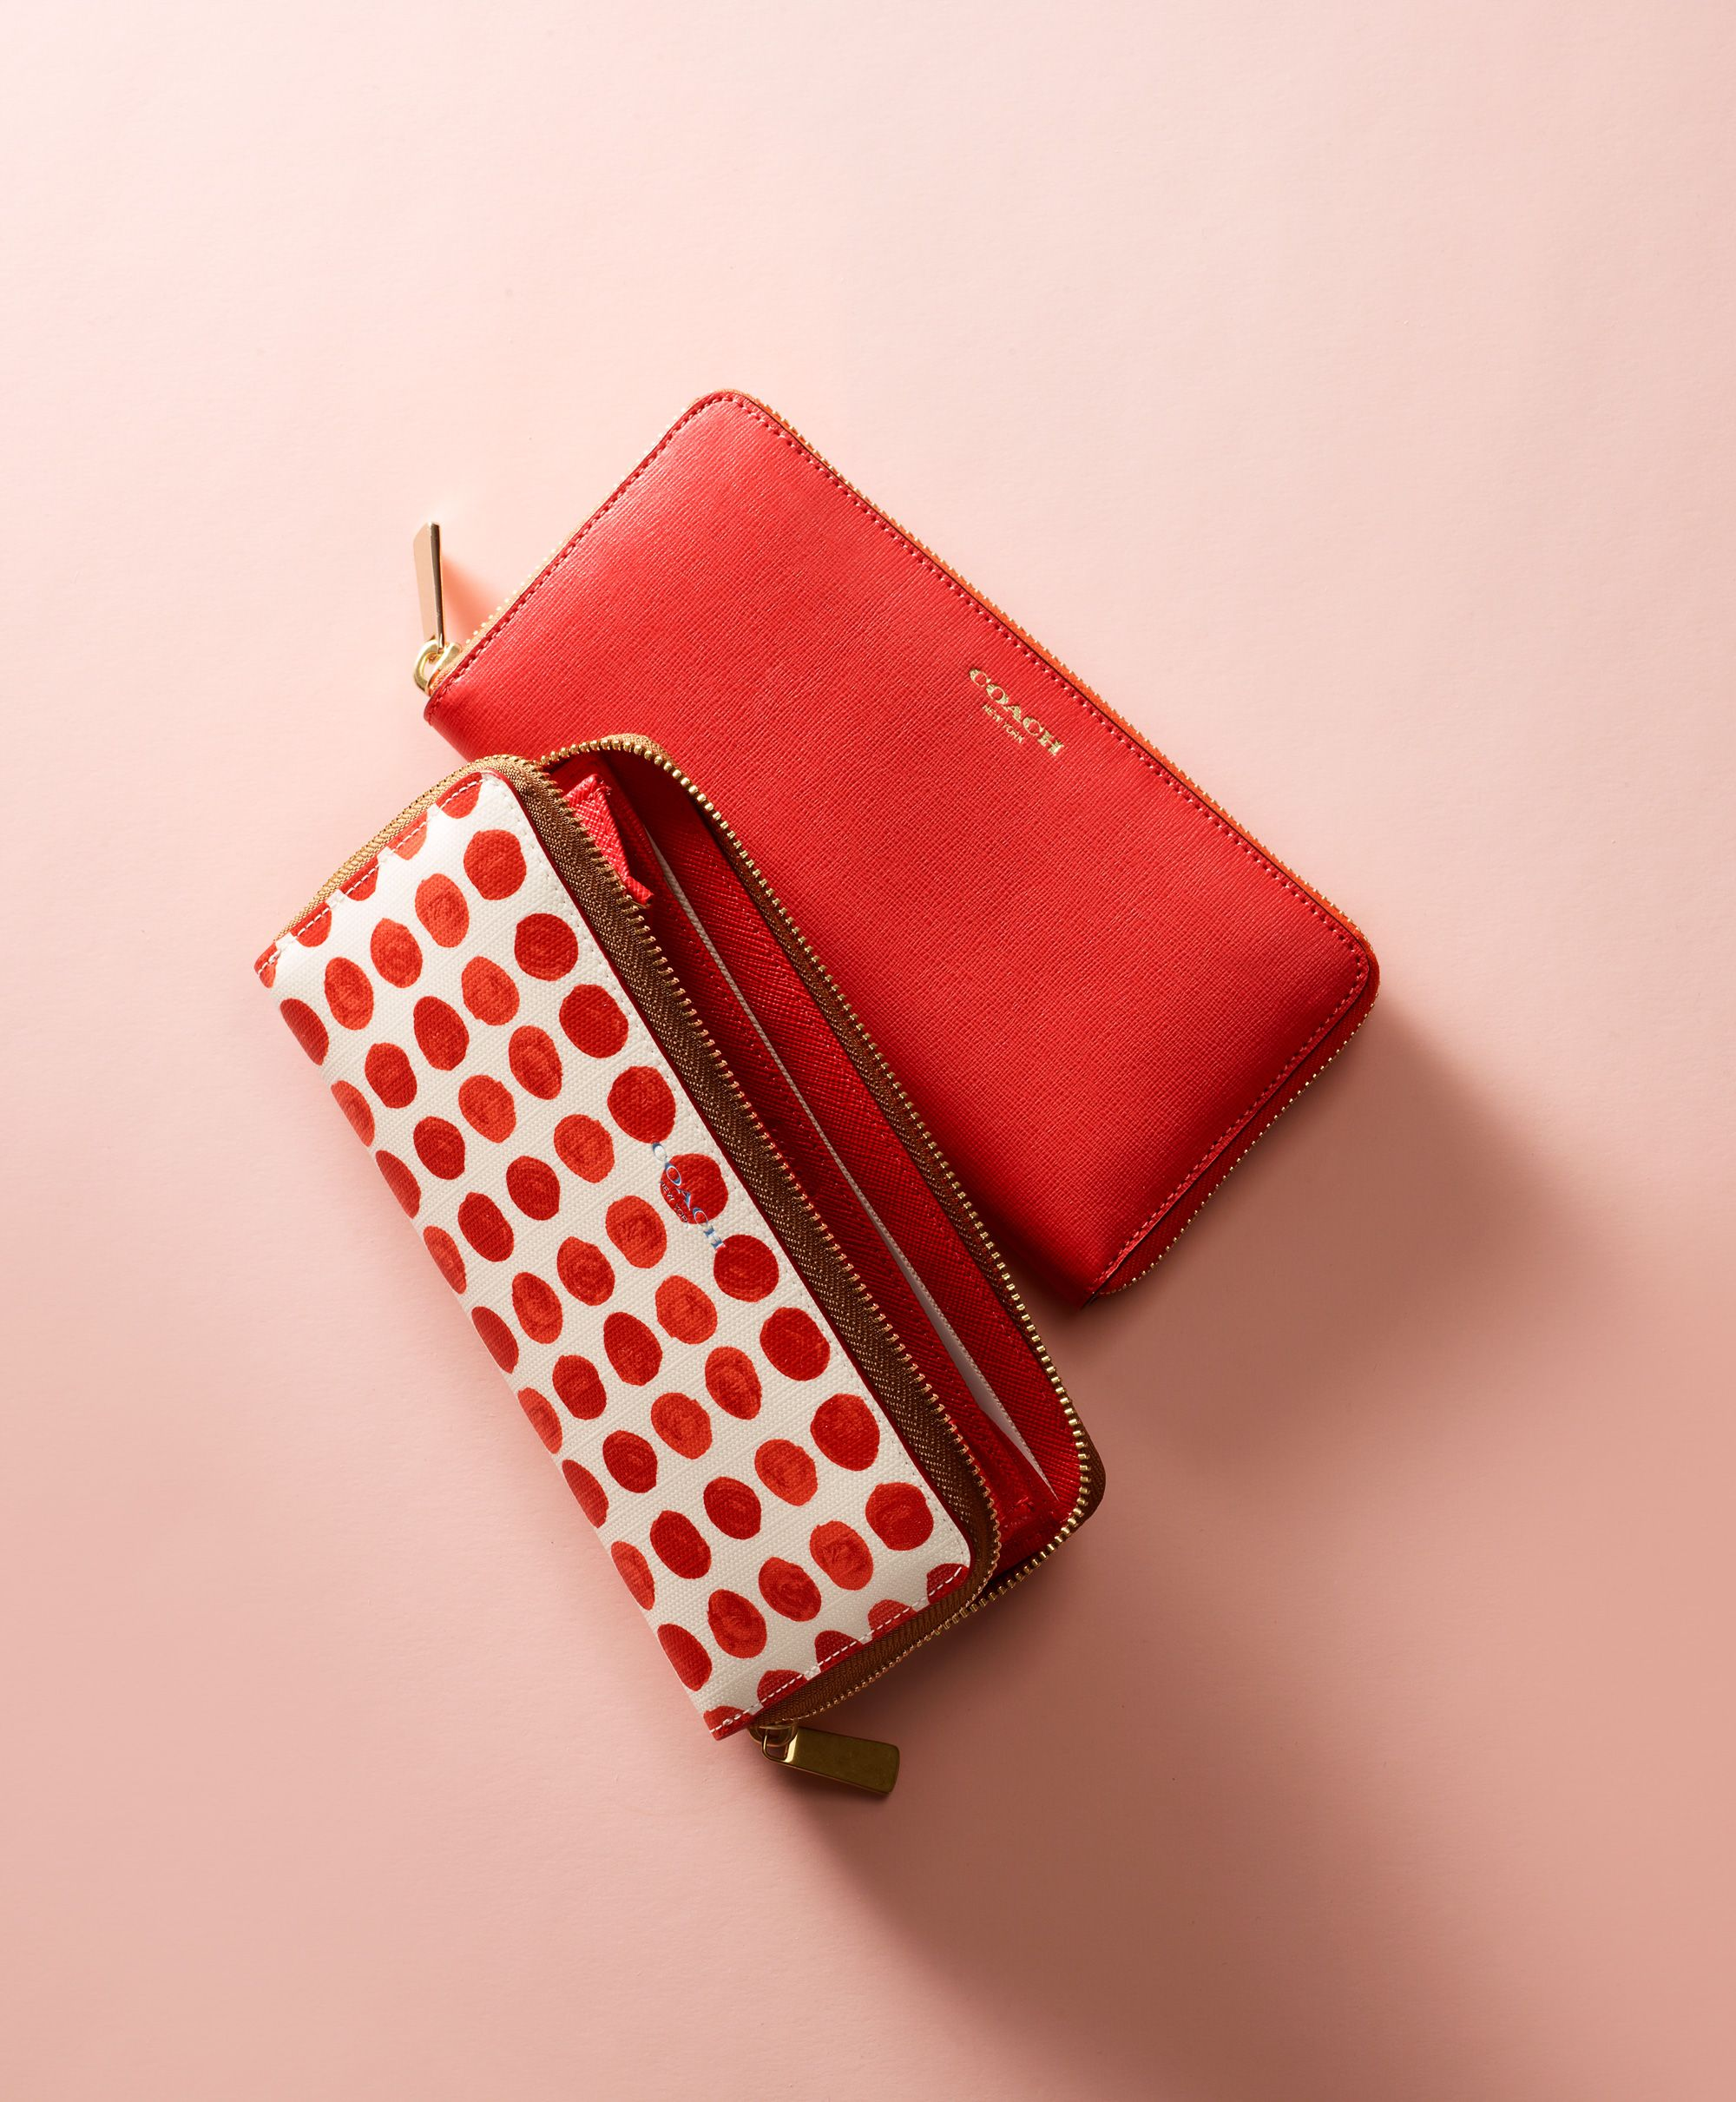 A gift for every valentine Love,  Coach---I don't care for red, but I love the polka dots!  Charity Chics www.charitychics.com